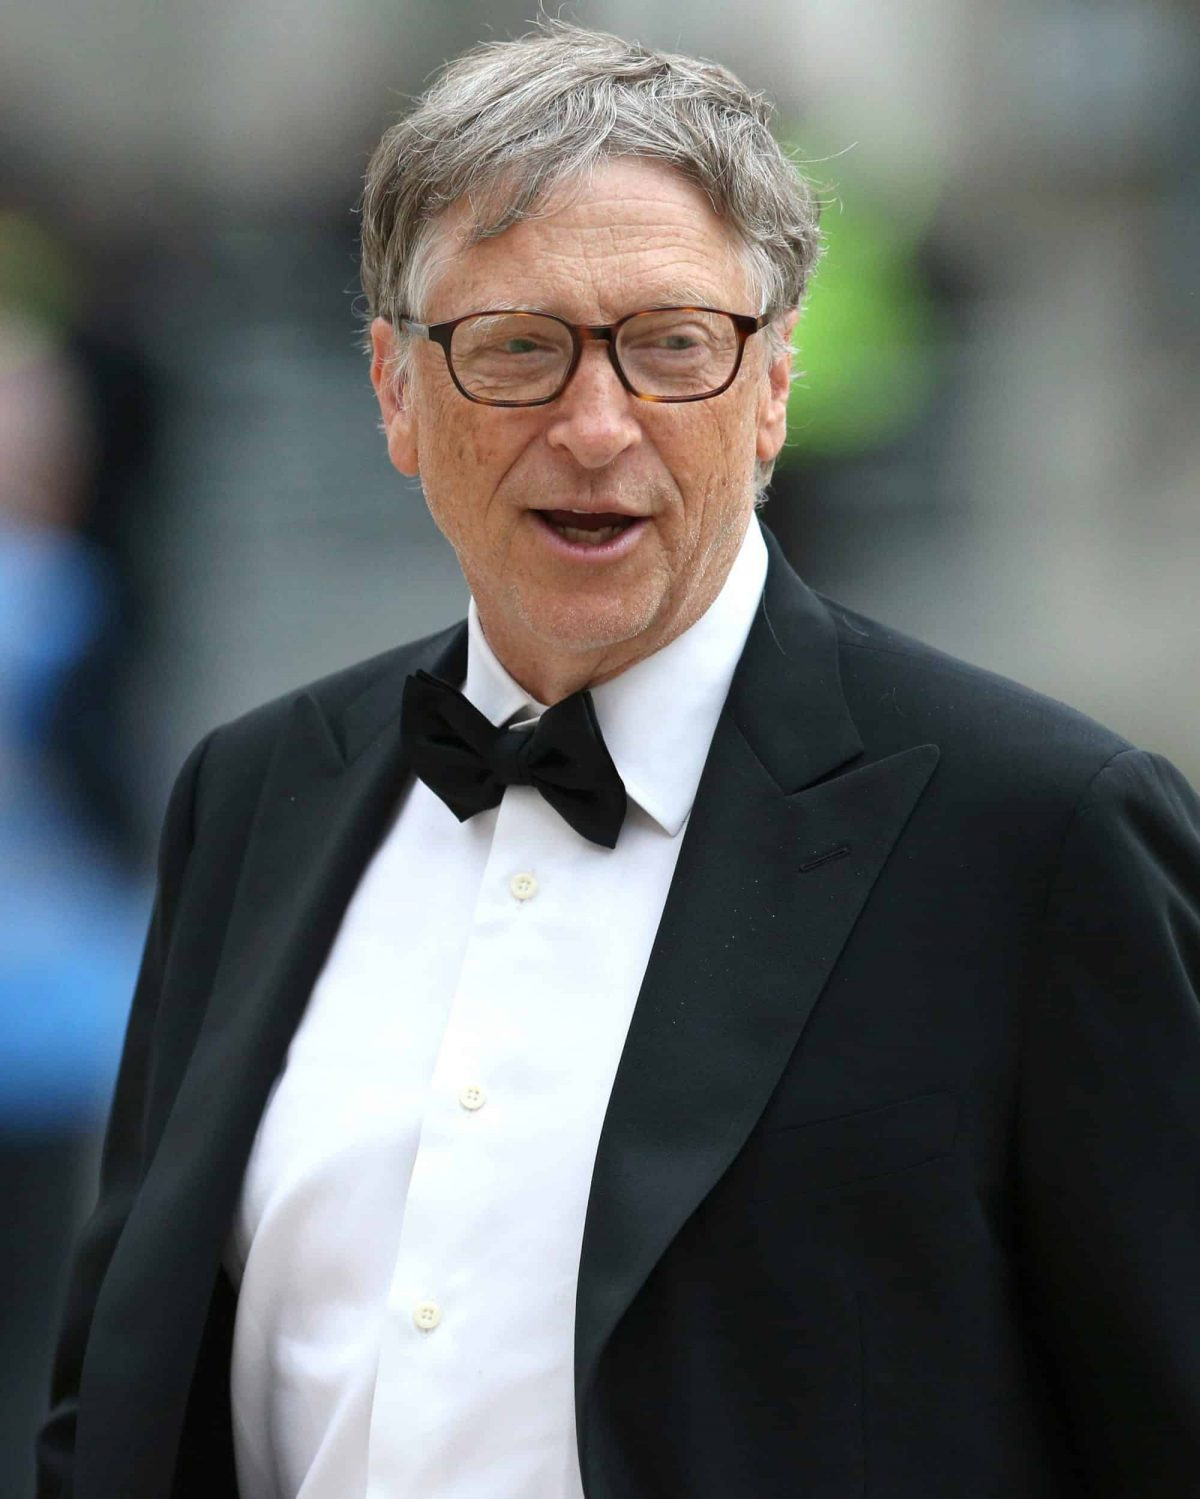 File photo dated 17/4/2018 of Bill Gates, who says we would all be using Windows Mobile today instead of Android if an antitrust case had not been lodged against it in the late 90s.